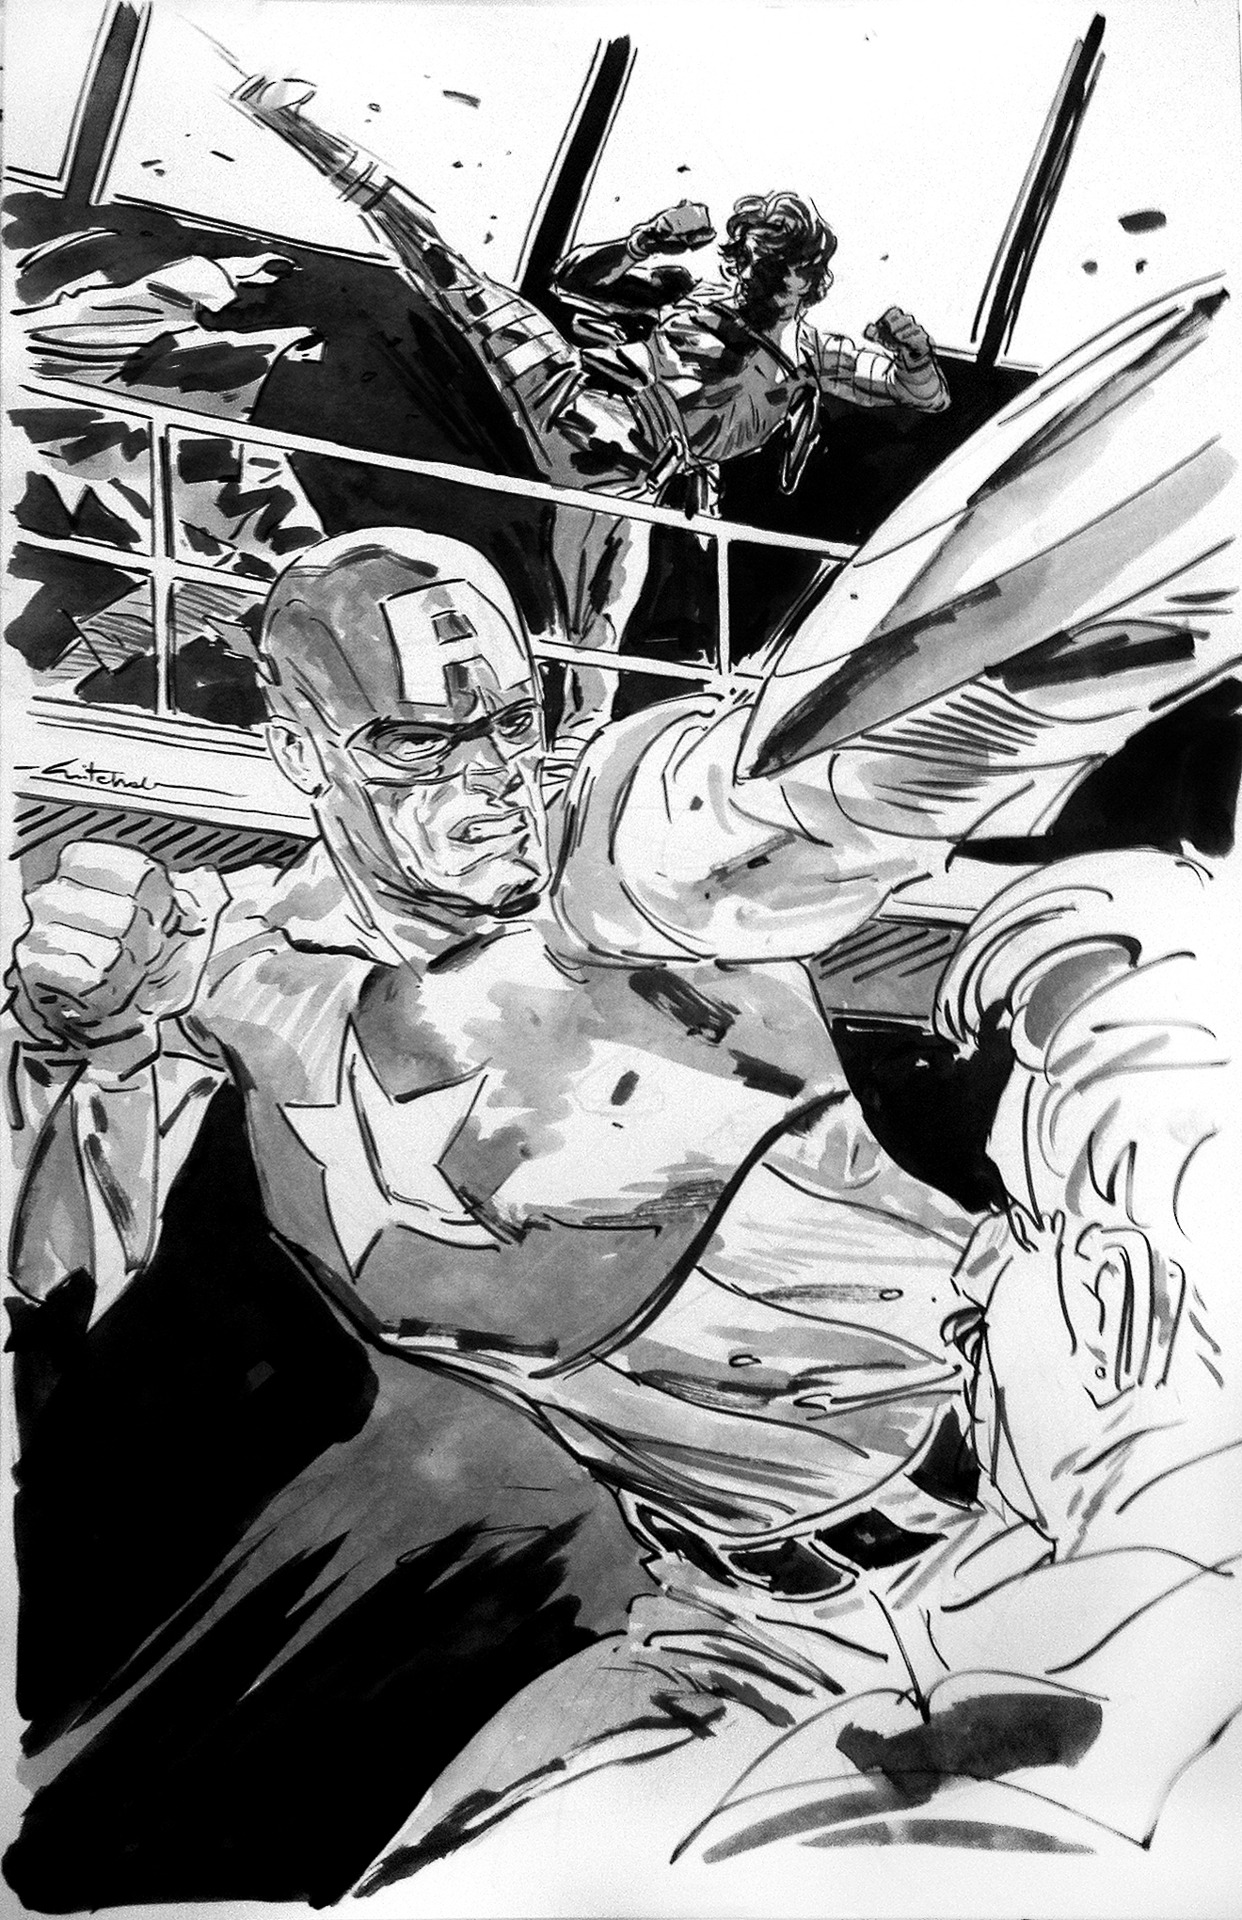 A selection of my Dallas commissions. Lots of #CaptainAmerica related art goodies!